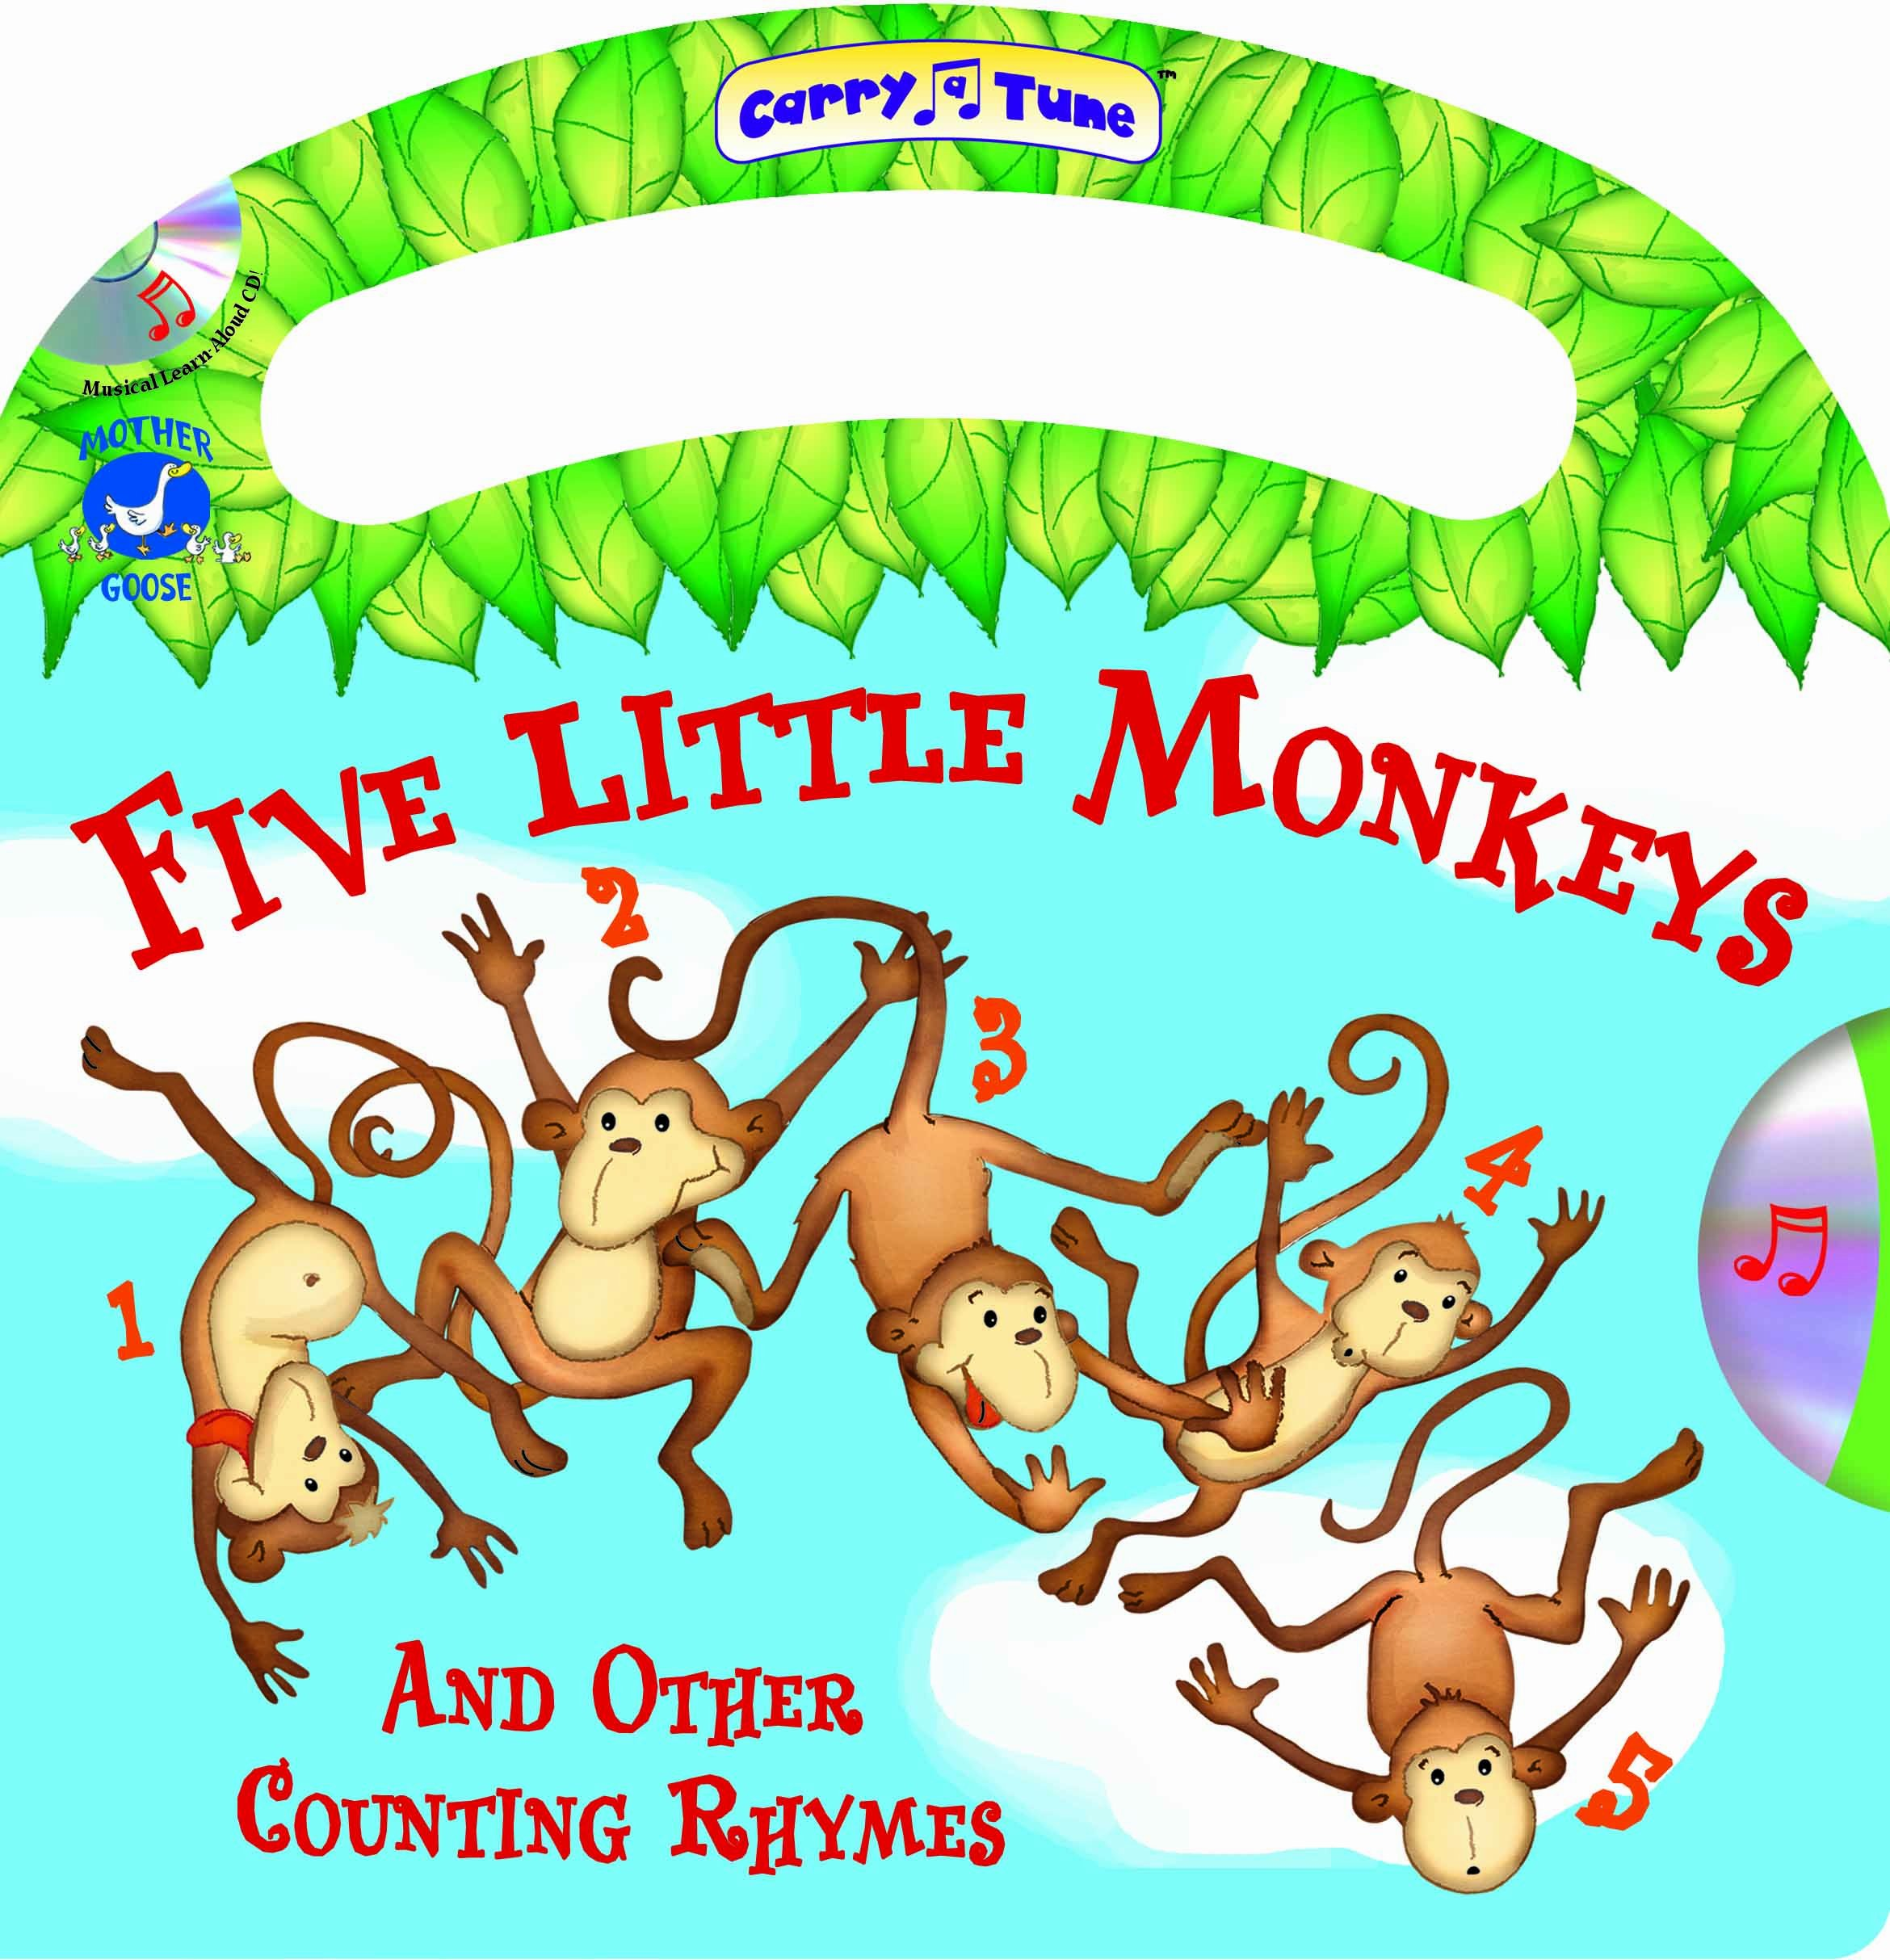 Five Little Monkeys And Other Counting Rhymes - A Mother Goose Nursery Rhymes Book (Carry-a-Tune book with audio CD)